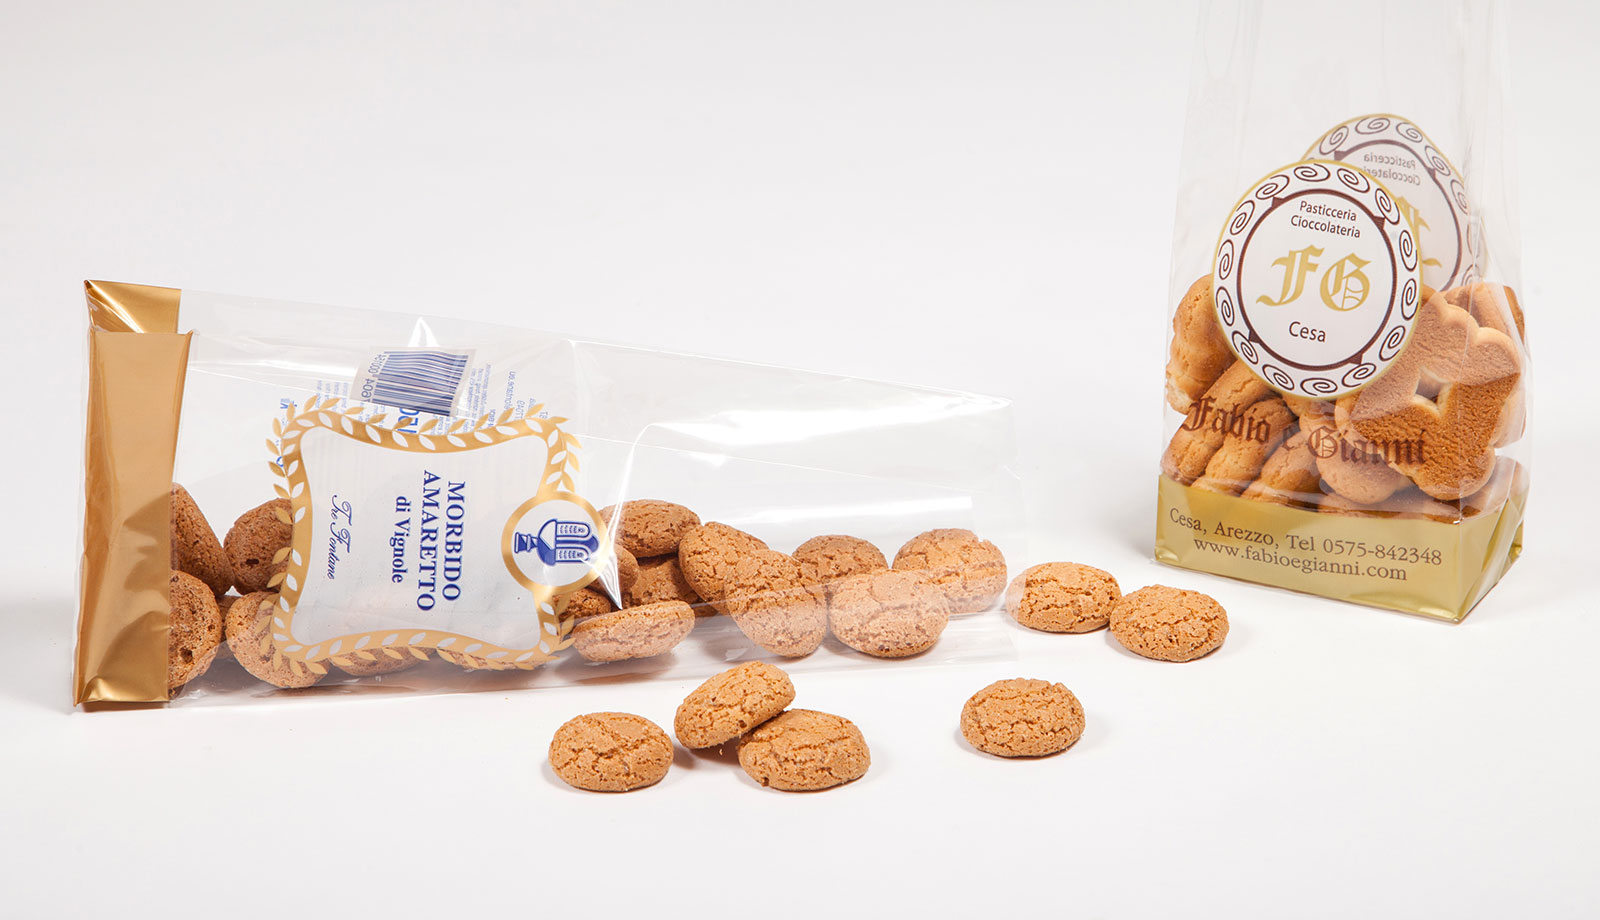 Il packaging dei biscotti: strategie e marketing